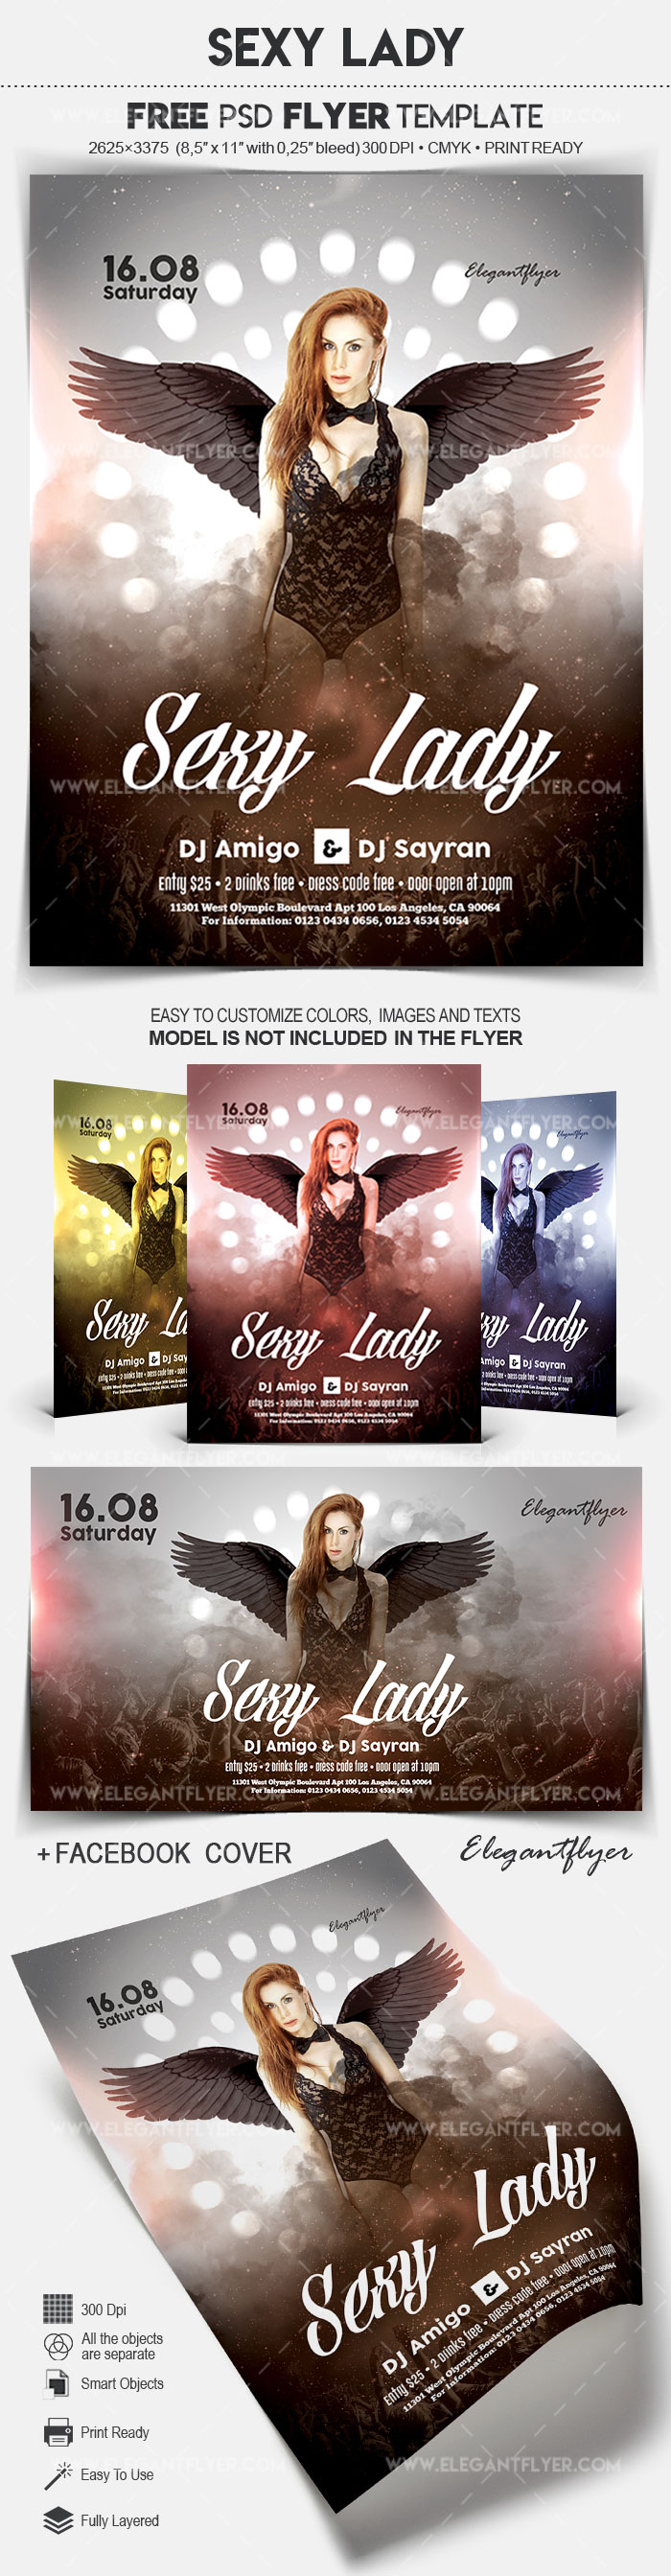 Sexy Lady – Free Flyer PSD Template